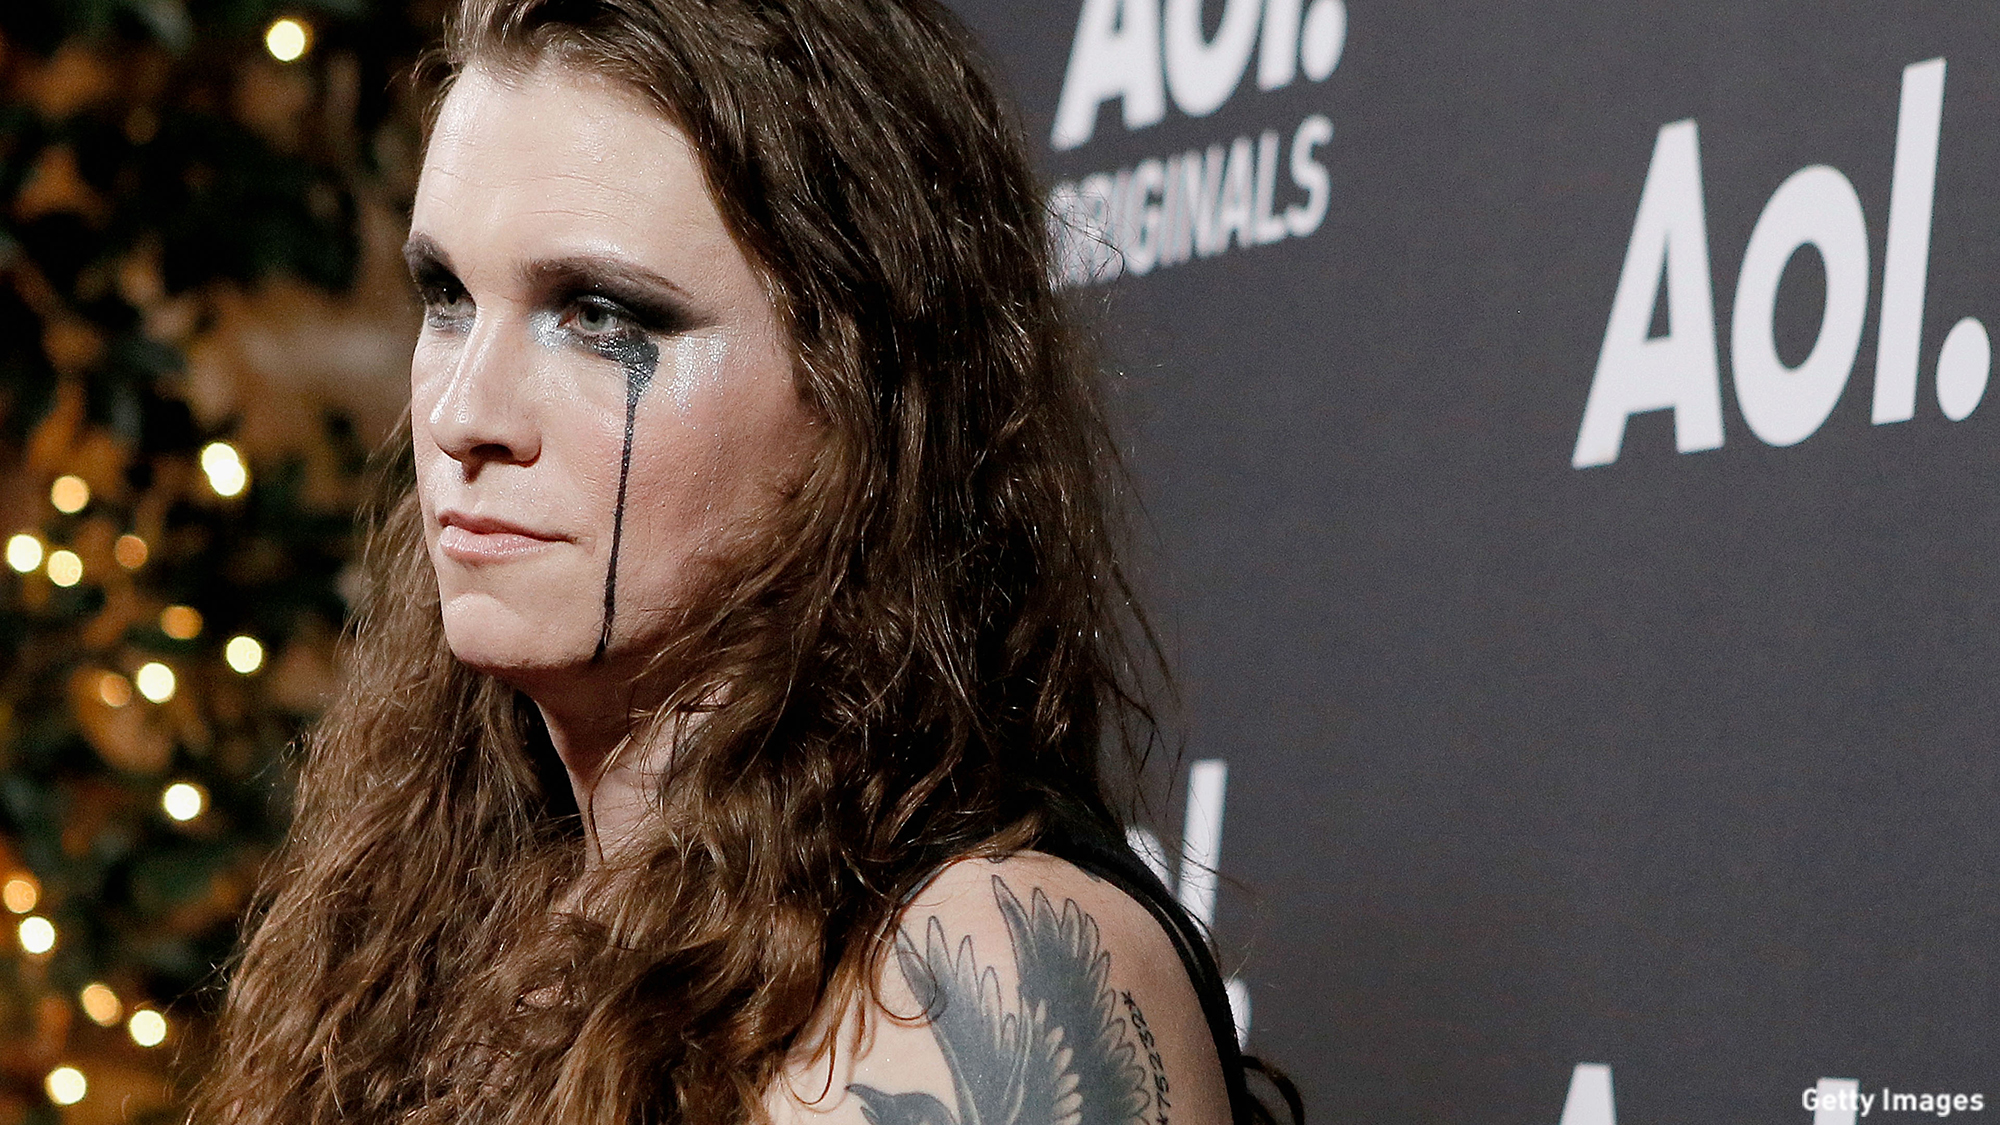 Laura Jane Grace: Tranny: Confessions of Punk Rock's Most Infamous Anarchist Sellout